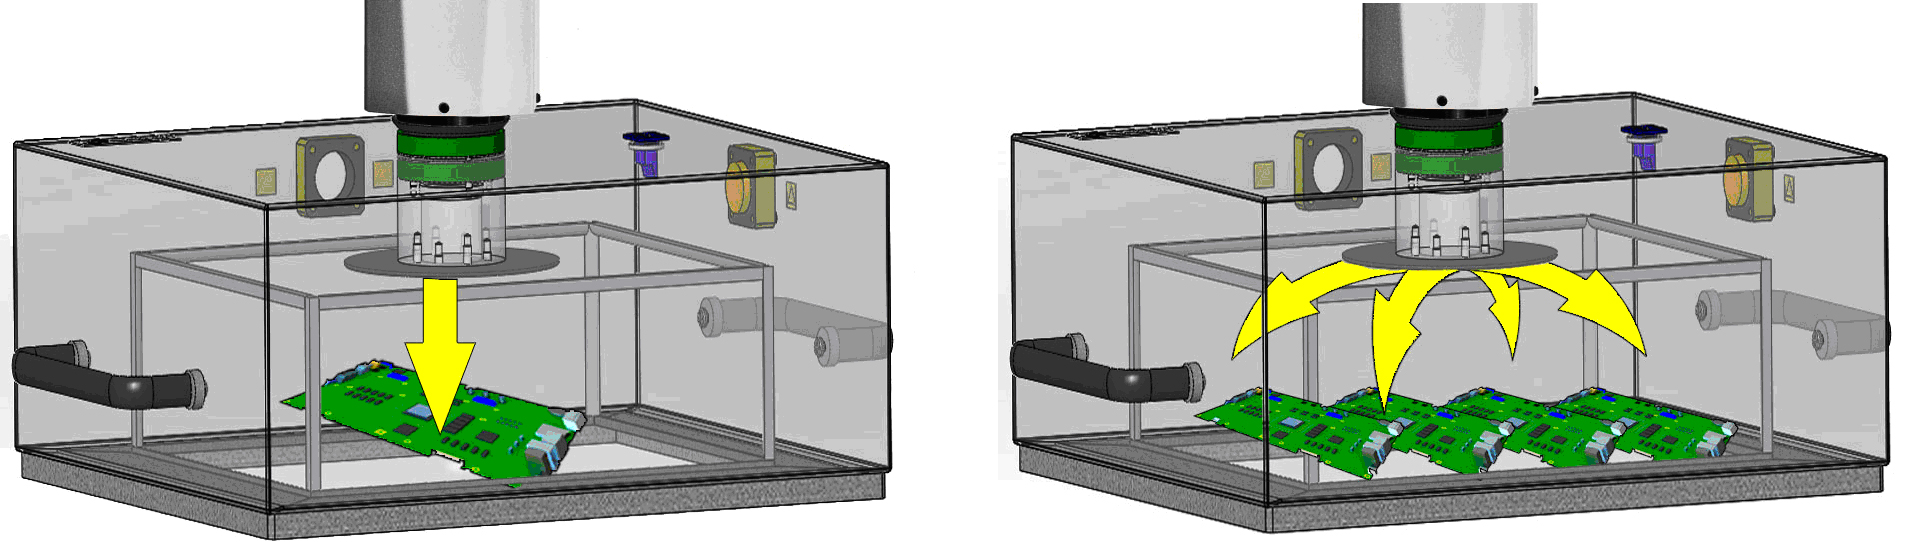 Figure 3. A portable, air-driven, temperature inducing system targets UUT directly (left) or indirectly at sides of enclosure (right).